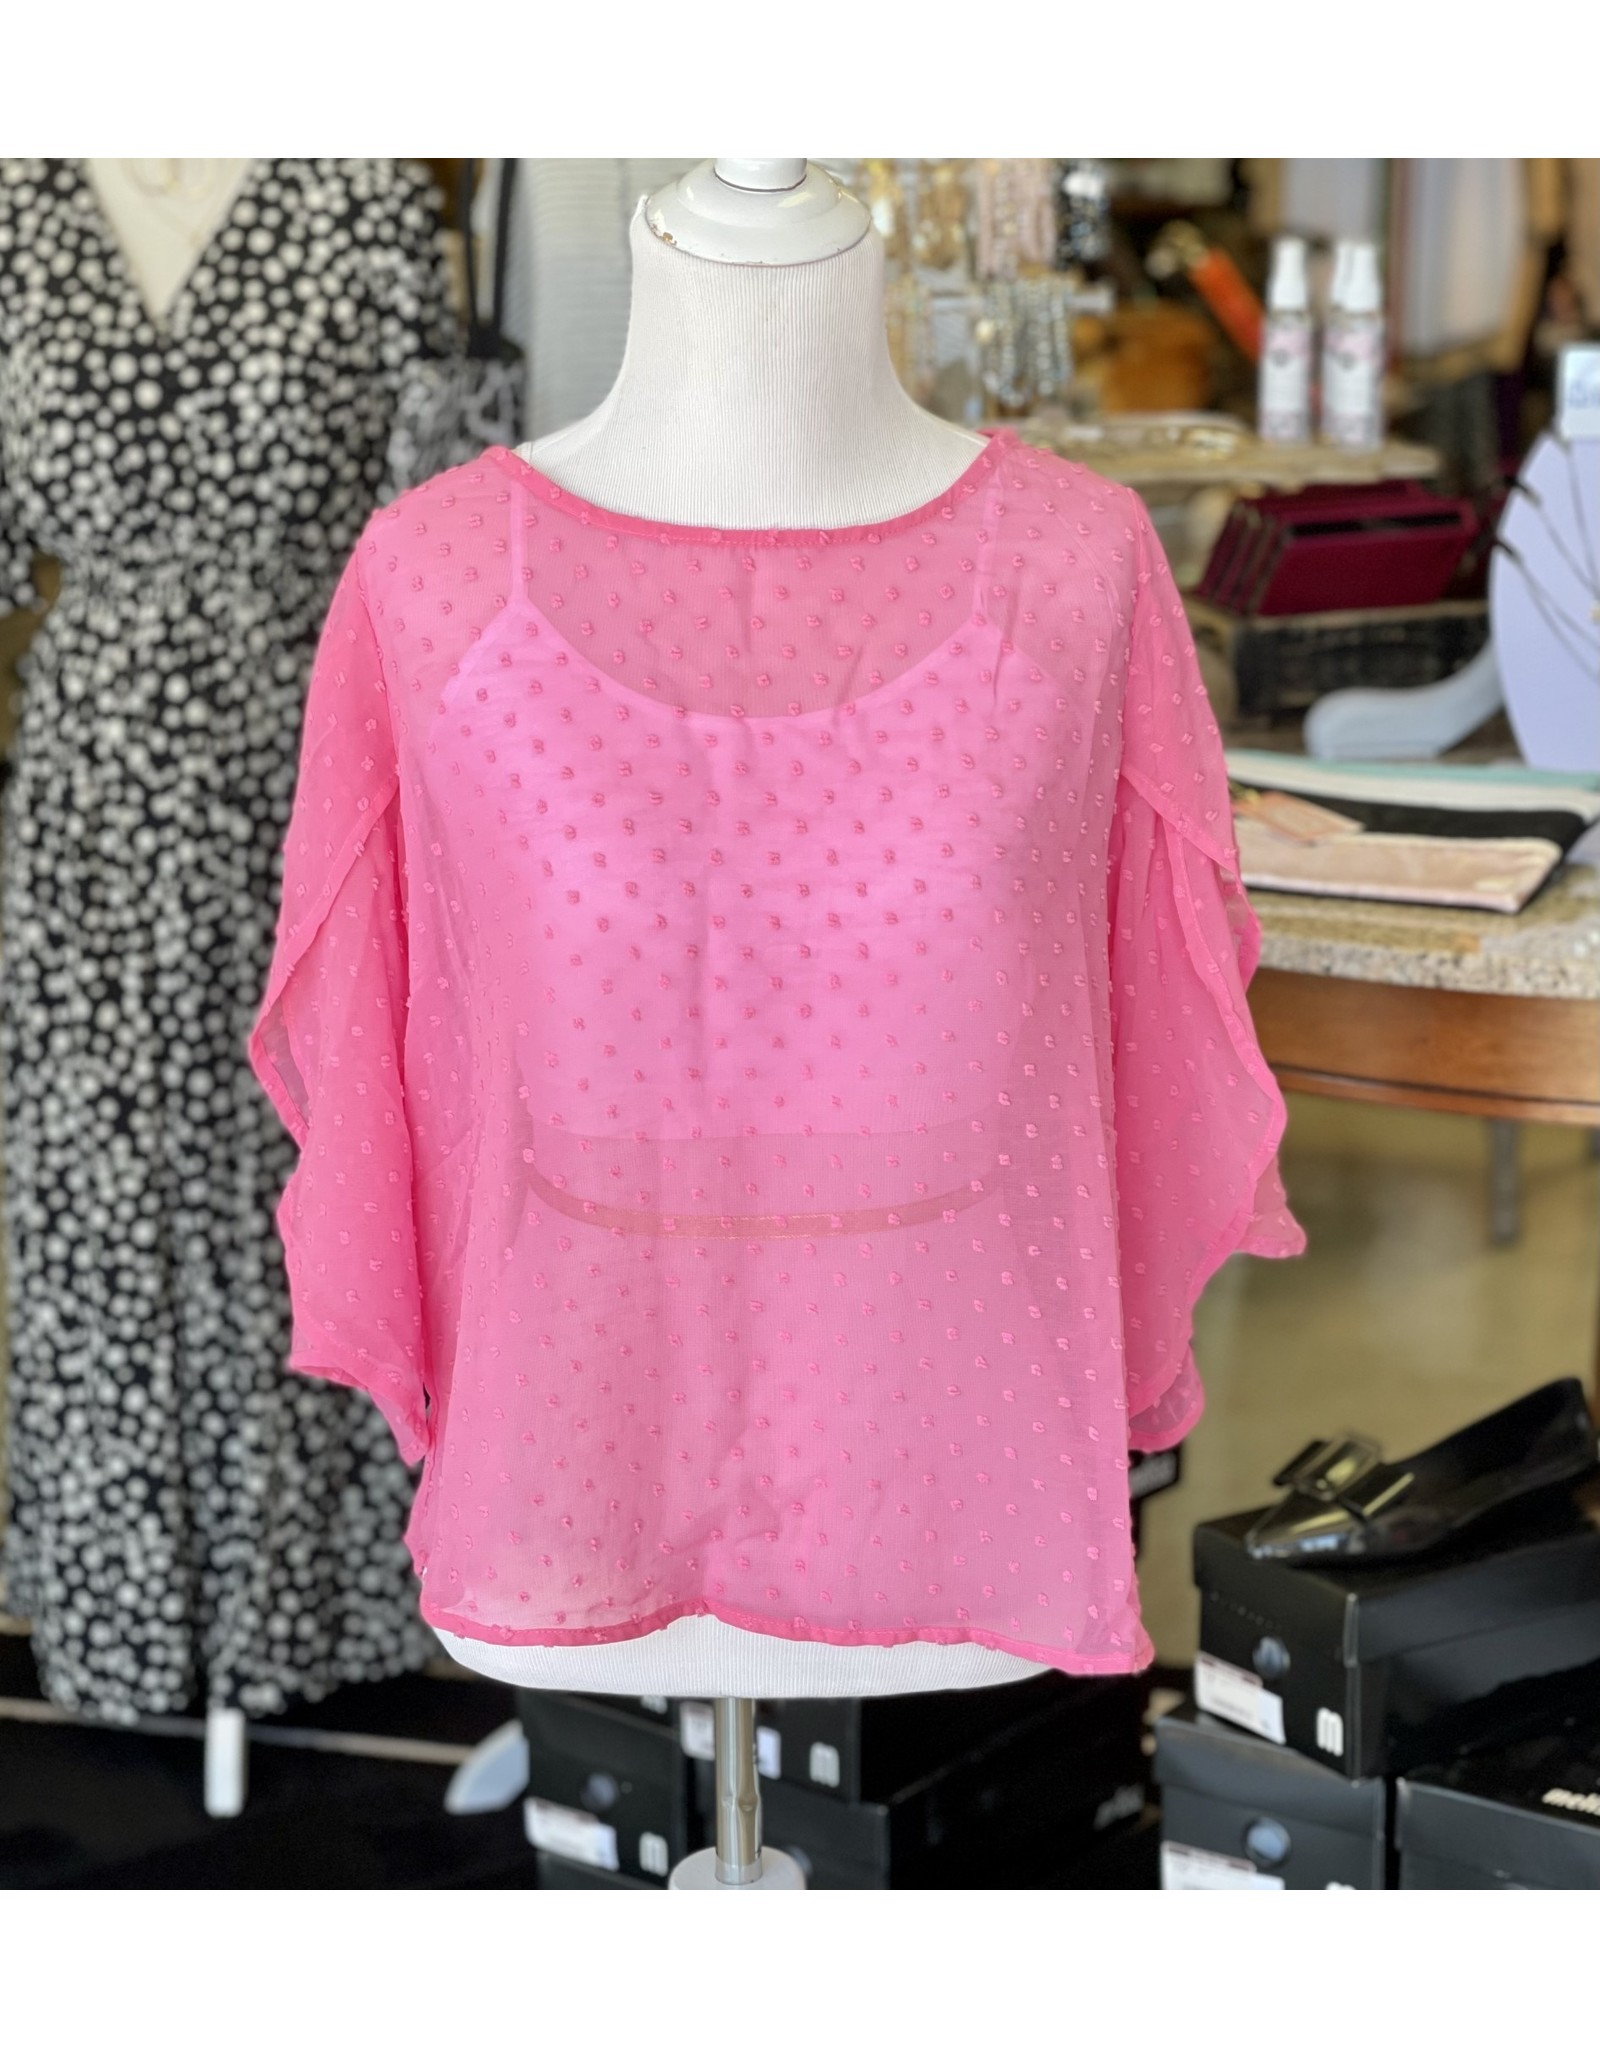 The Ritzy Gypsy BUBBLE Pink Textured Private Label Top